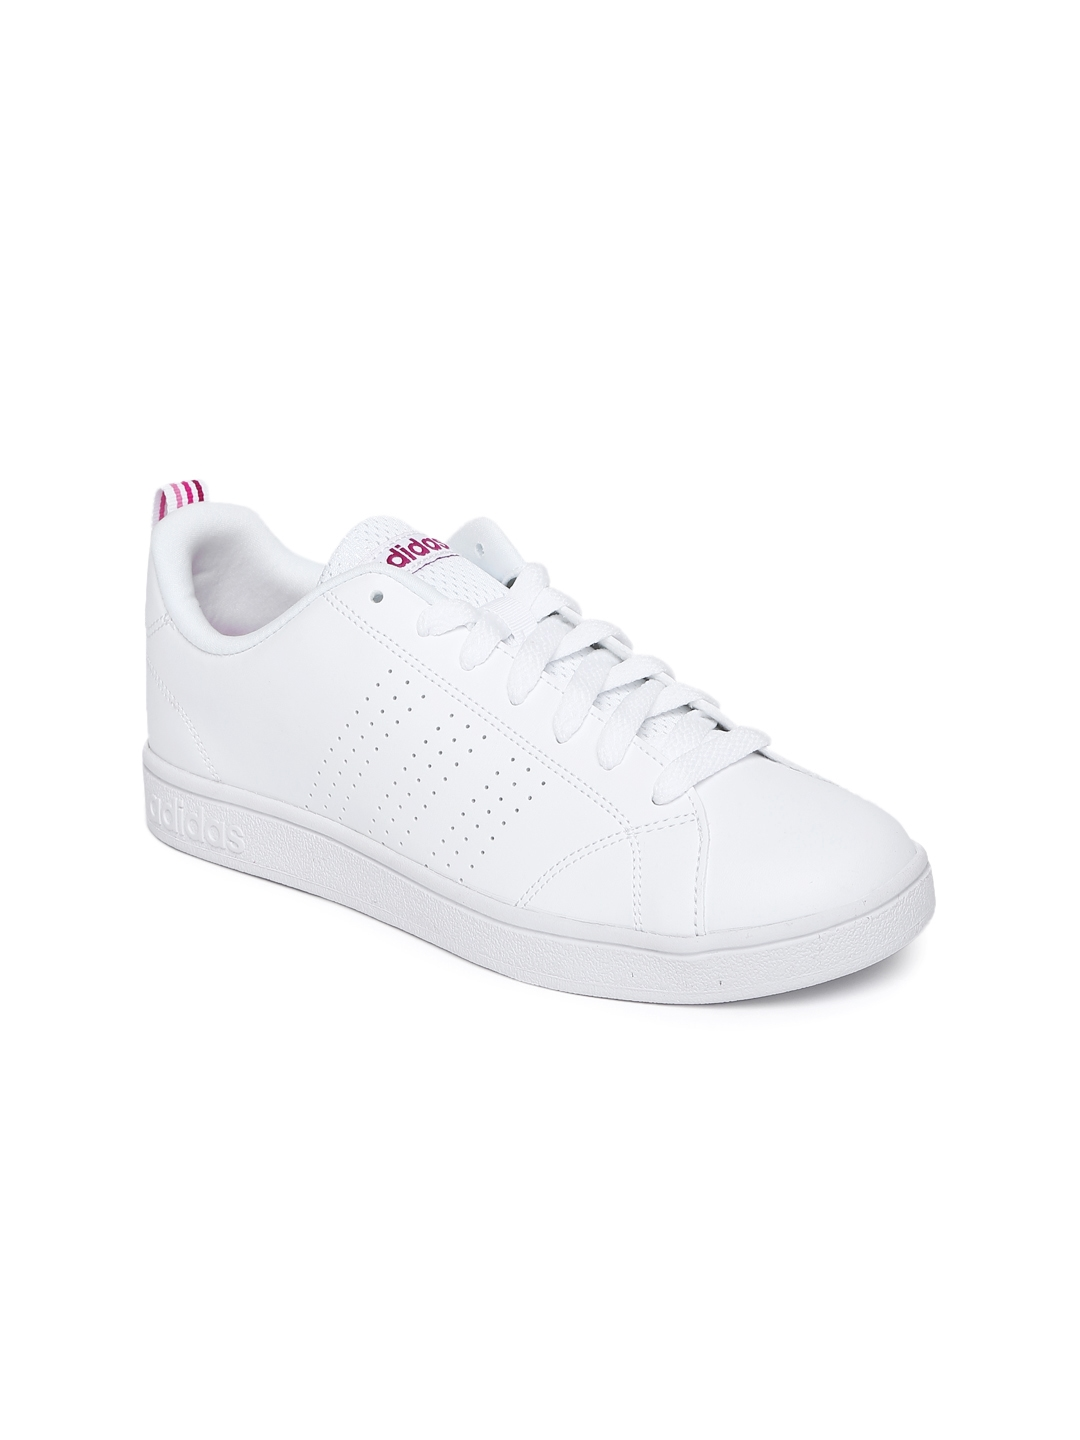 501796de7c95 Buy ADIDAS NEO Women White VS ADVANTAGE CLEAN Sneakers - Casual ...